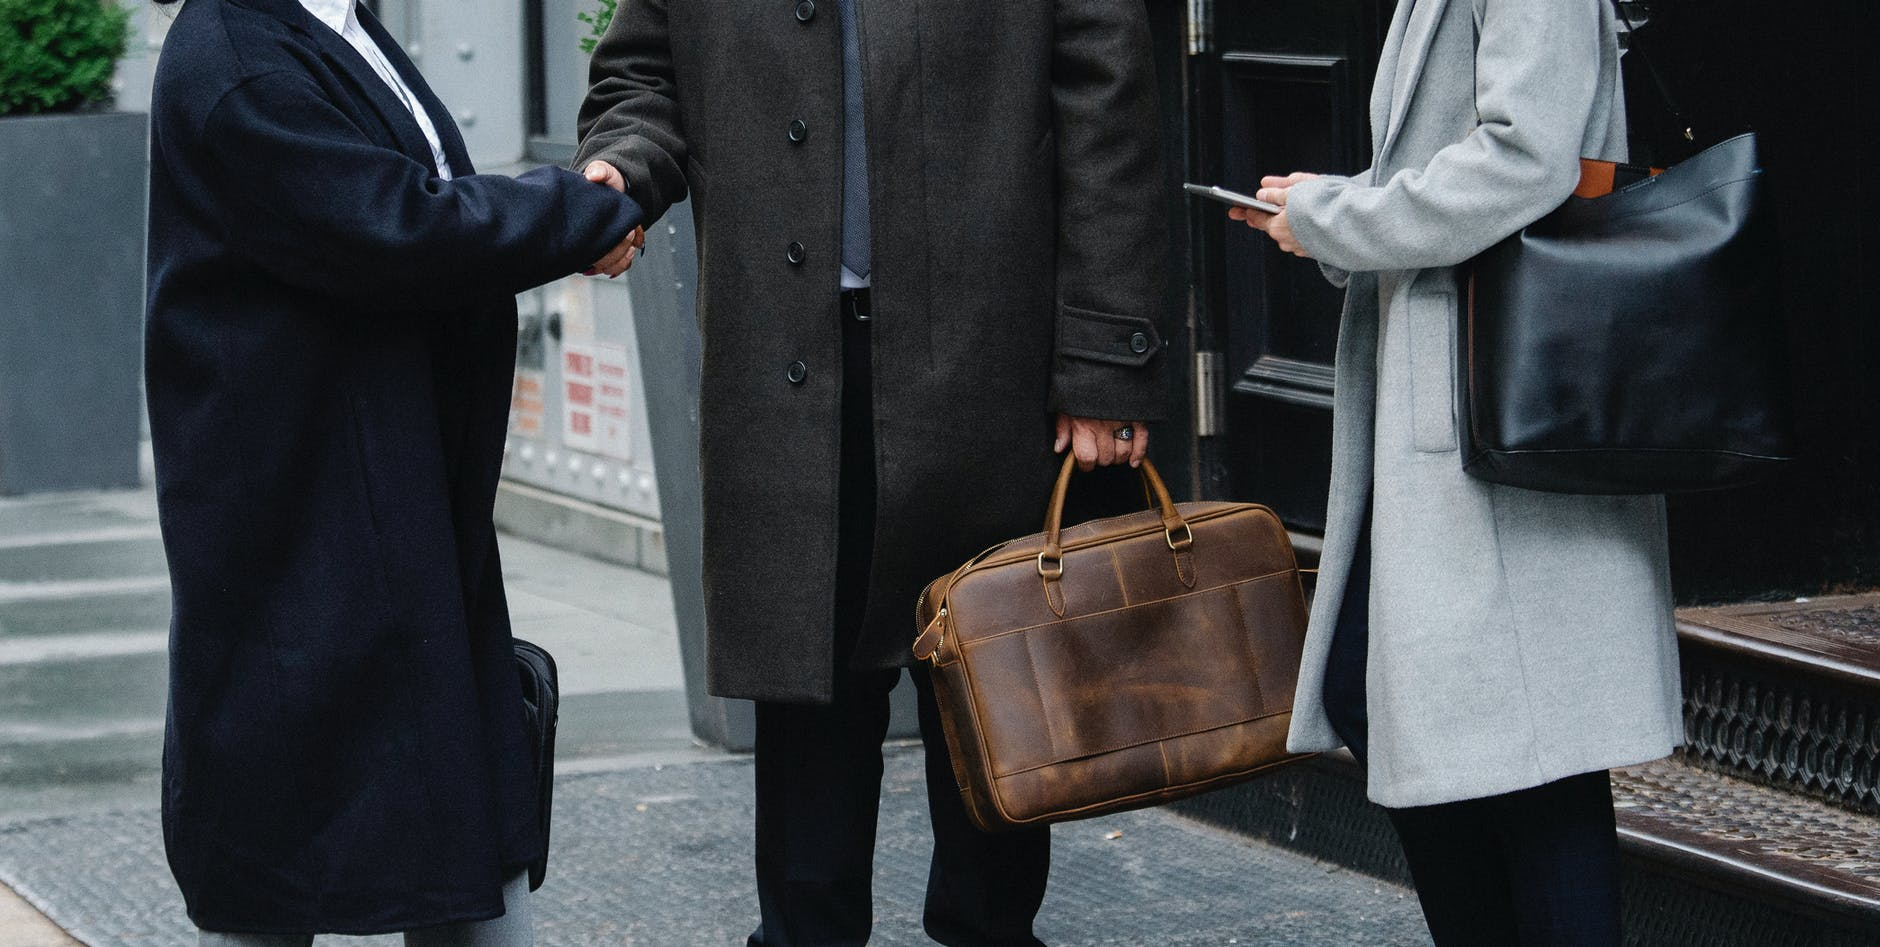 stylish businesspeople in outerwear shaking hands